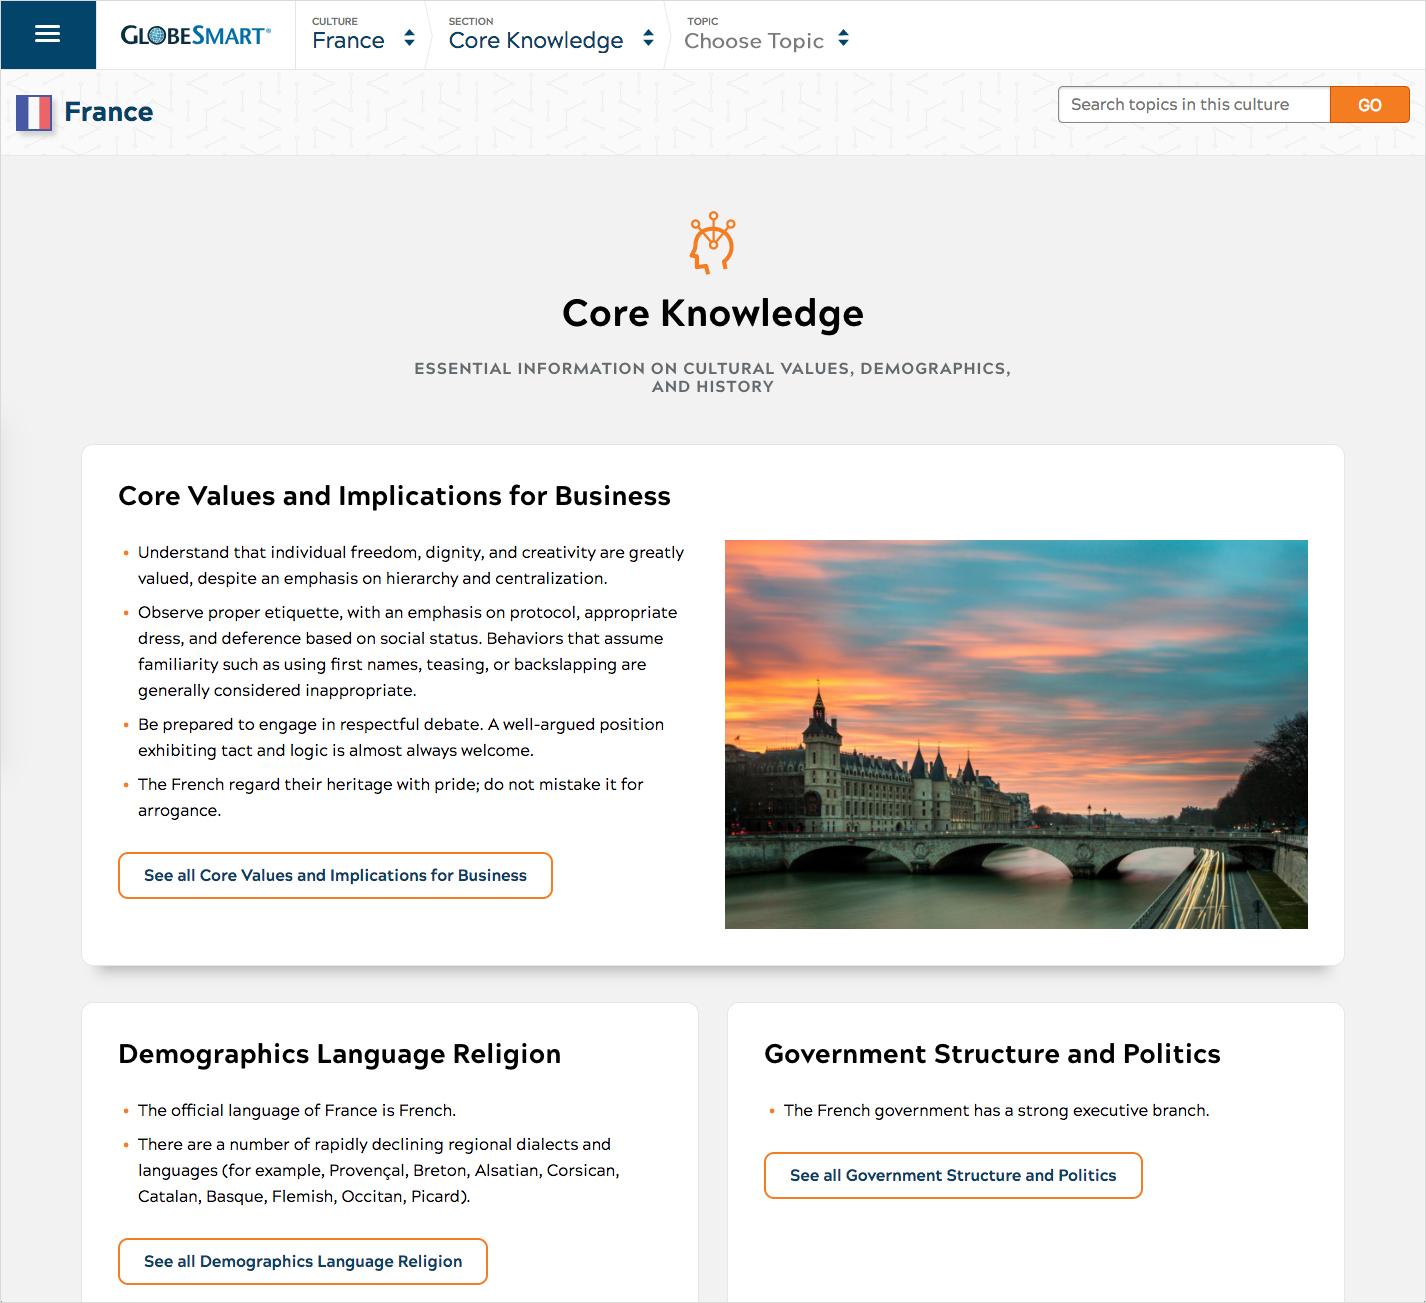 The next section summary page for the France culture guide, highlighting core values, demographics, and government structures.